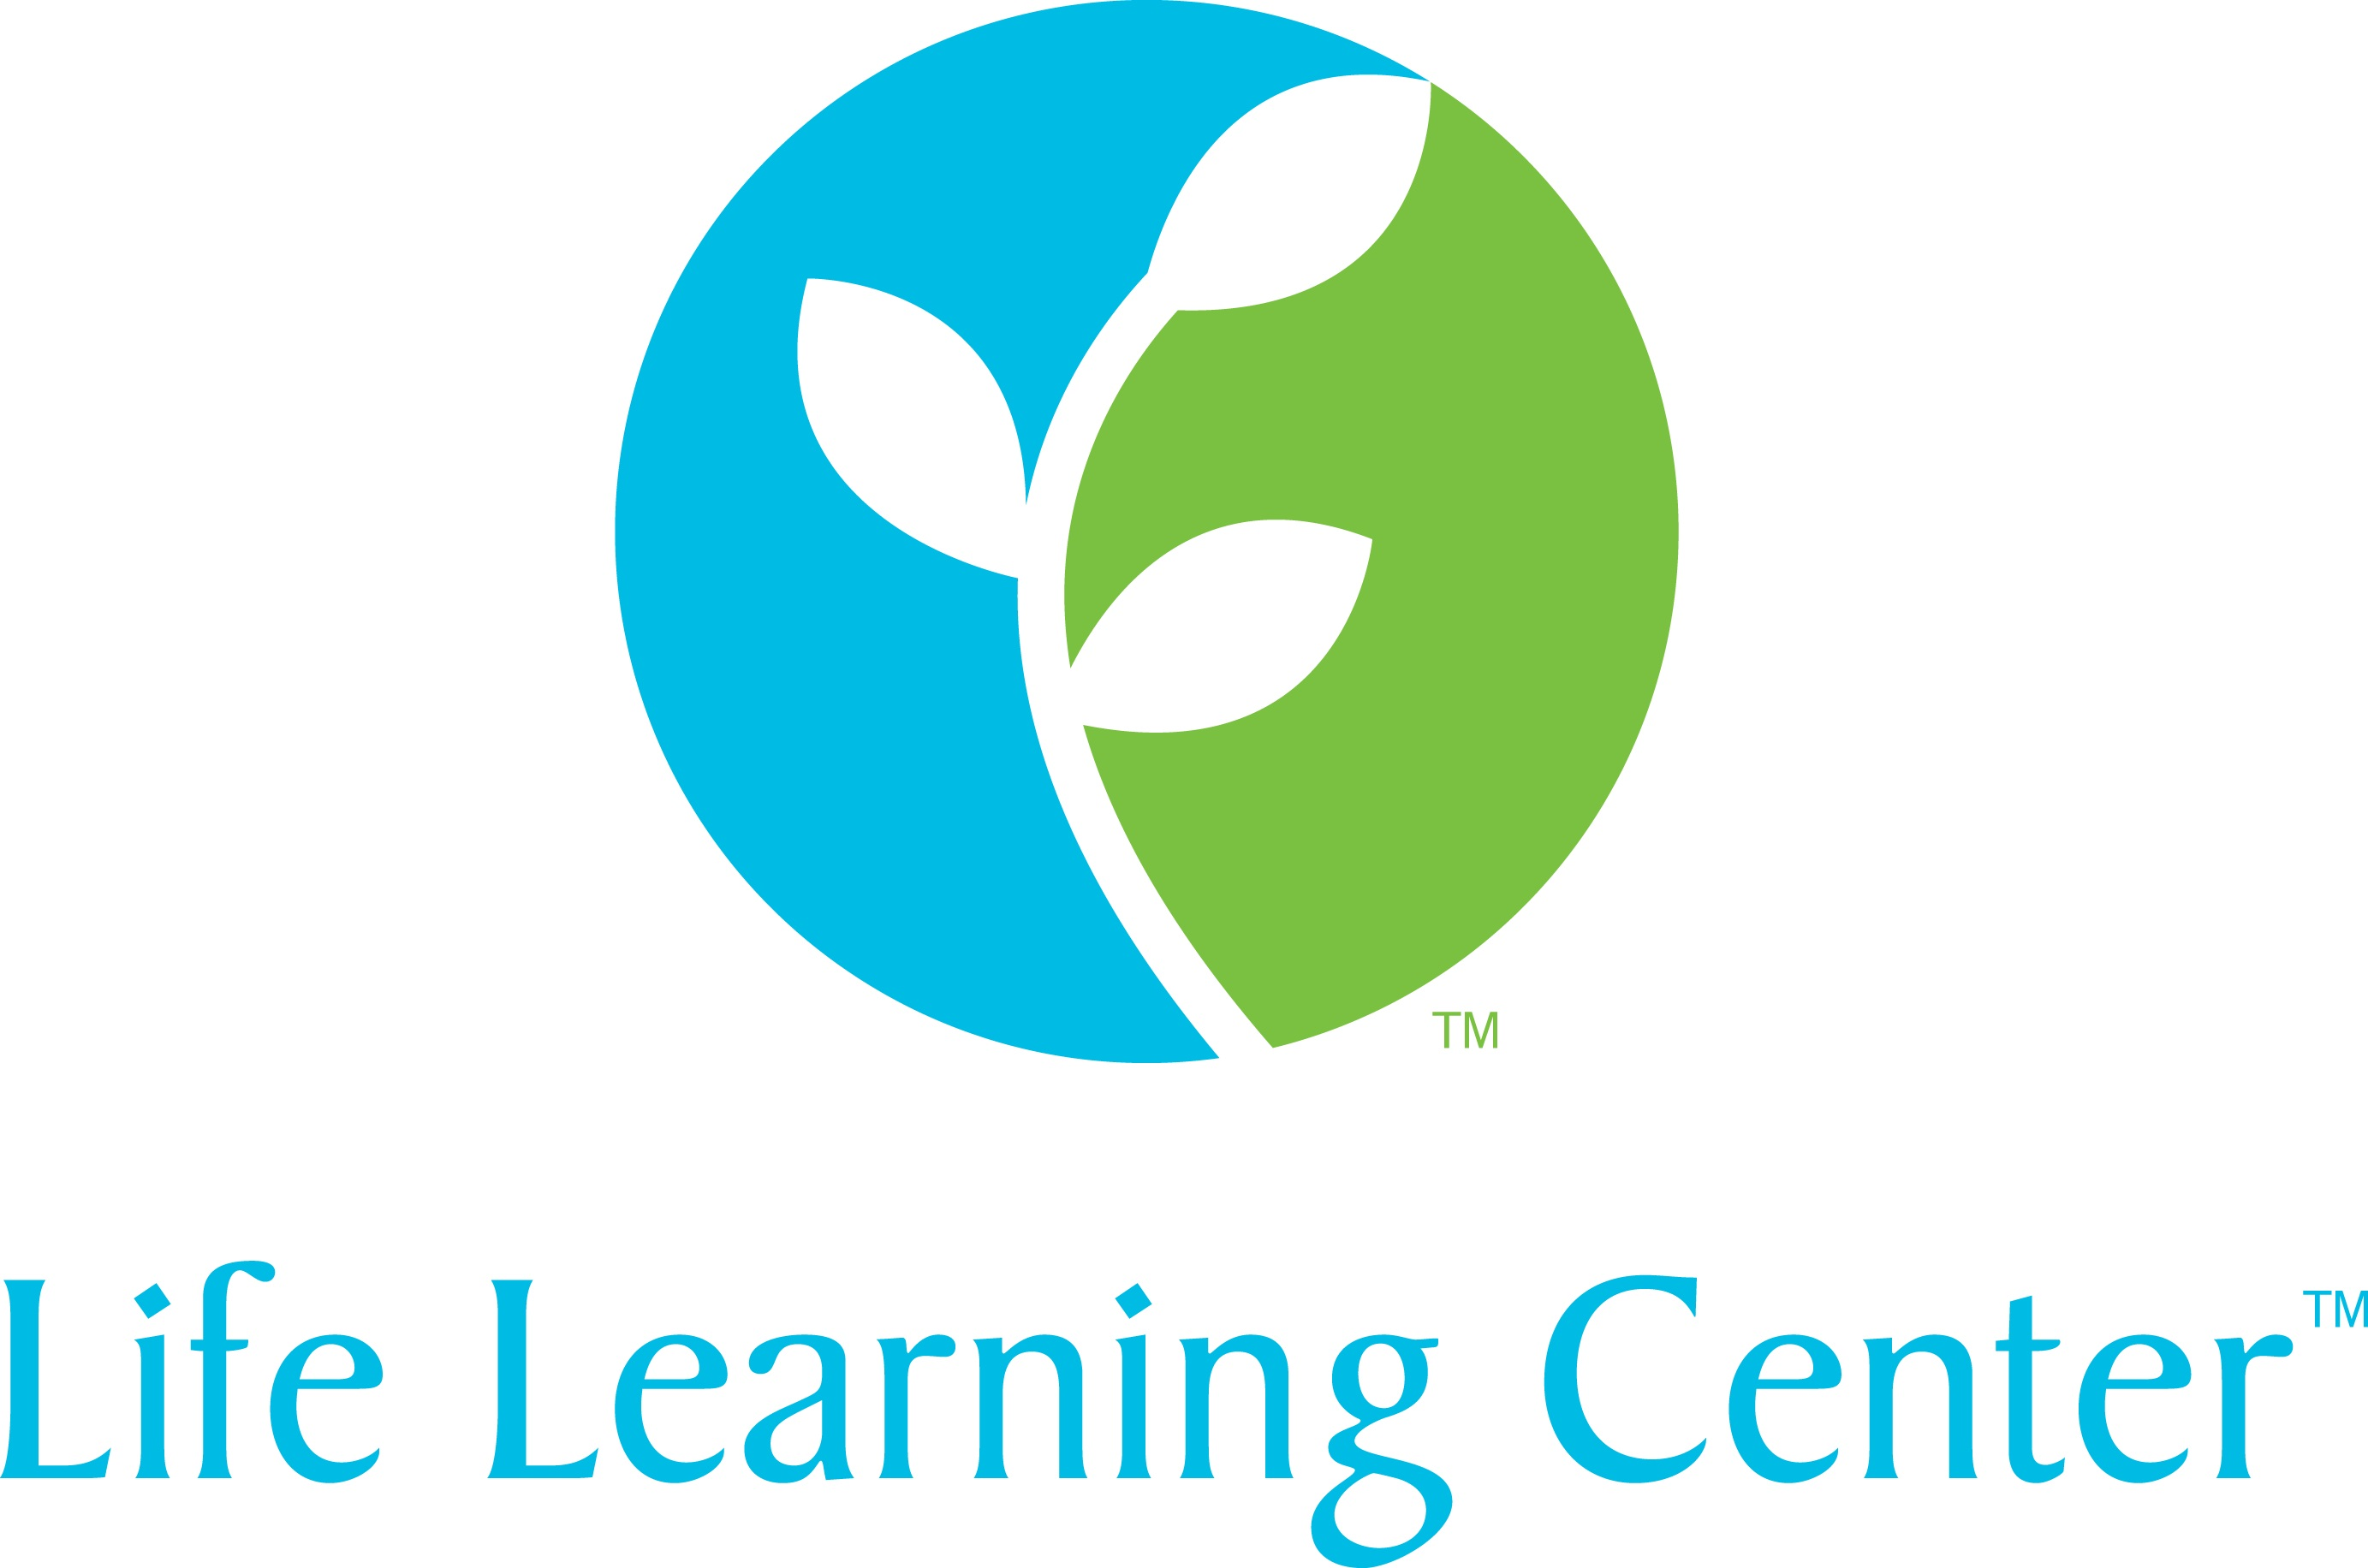 Life Learning Center